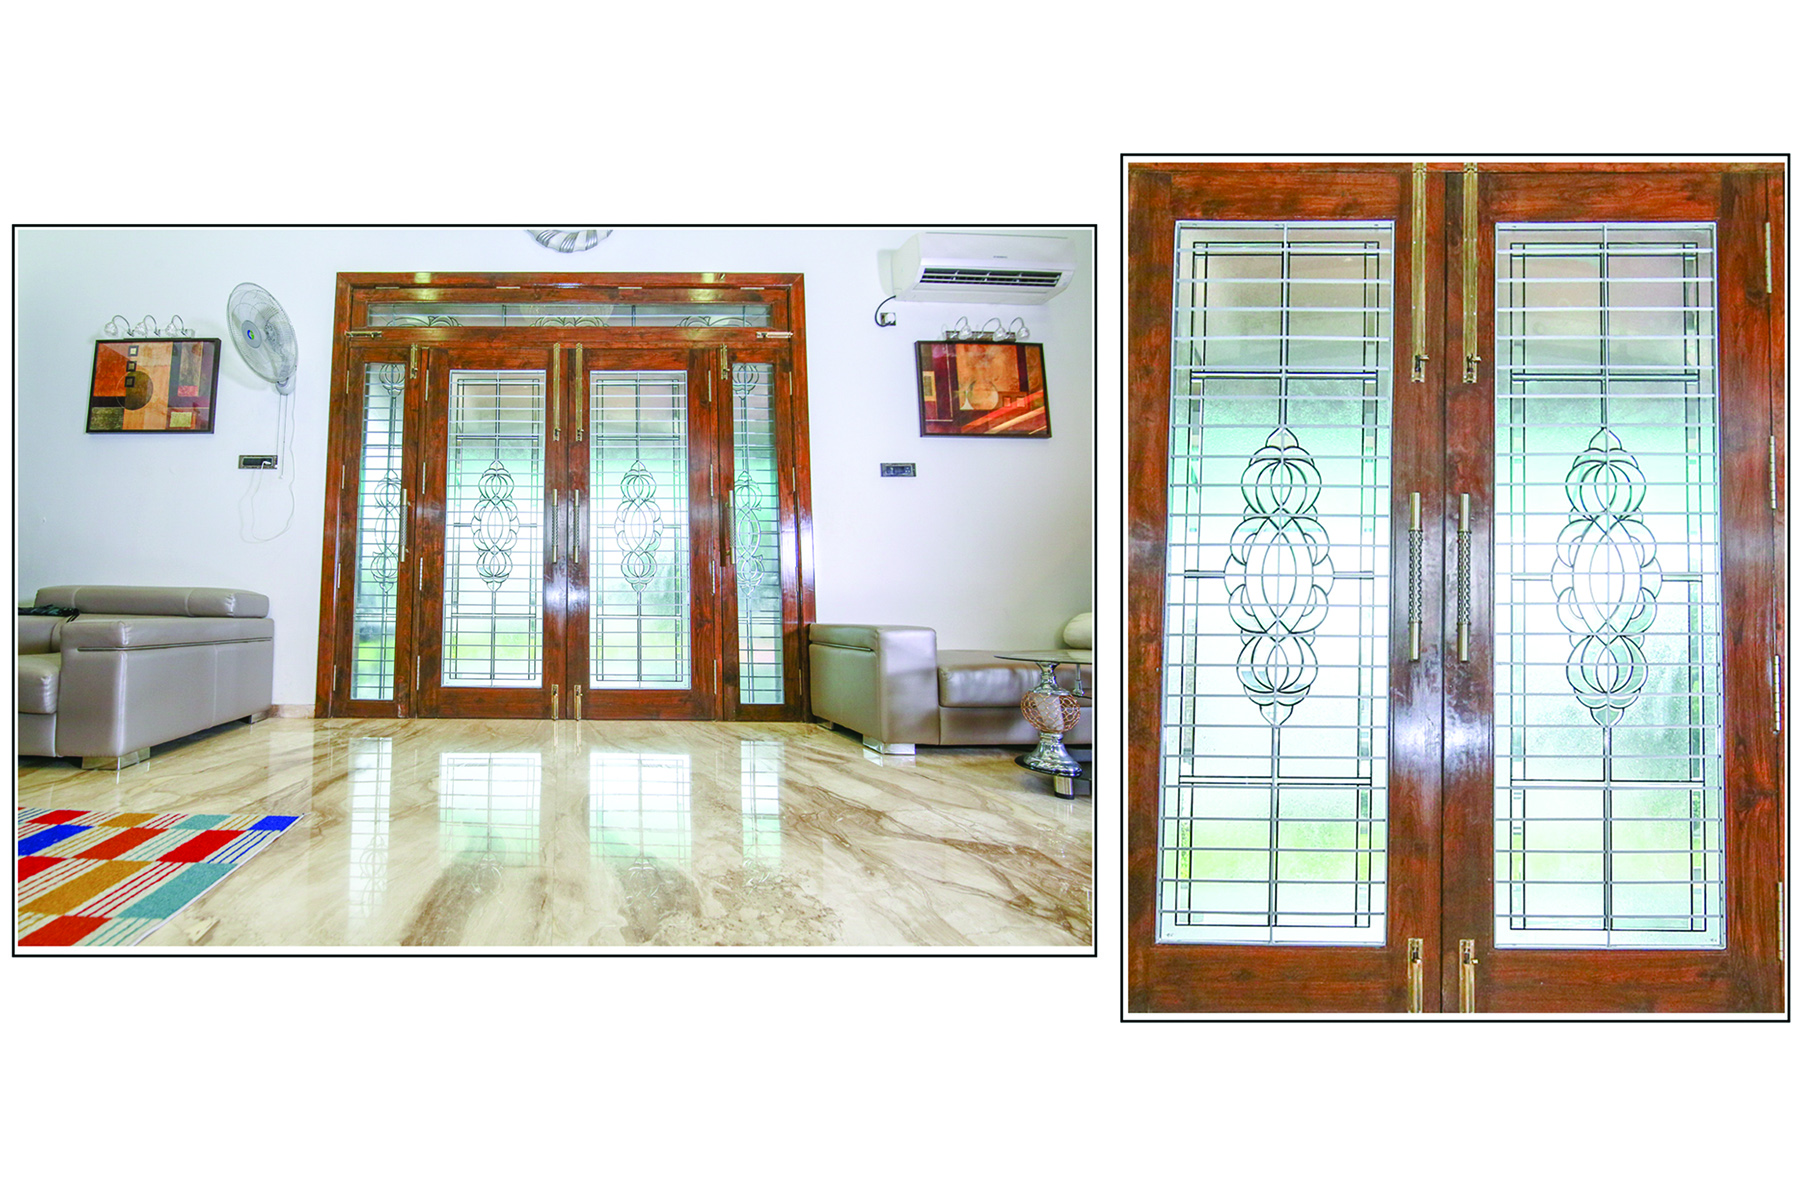 Temple glass & door – Shree Rangkala Glass Design